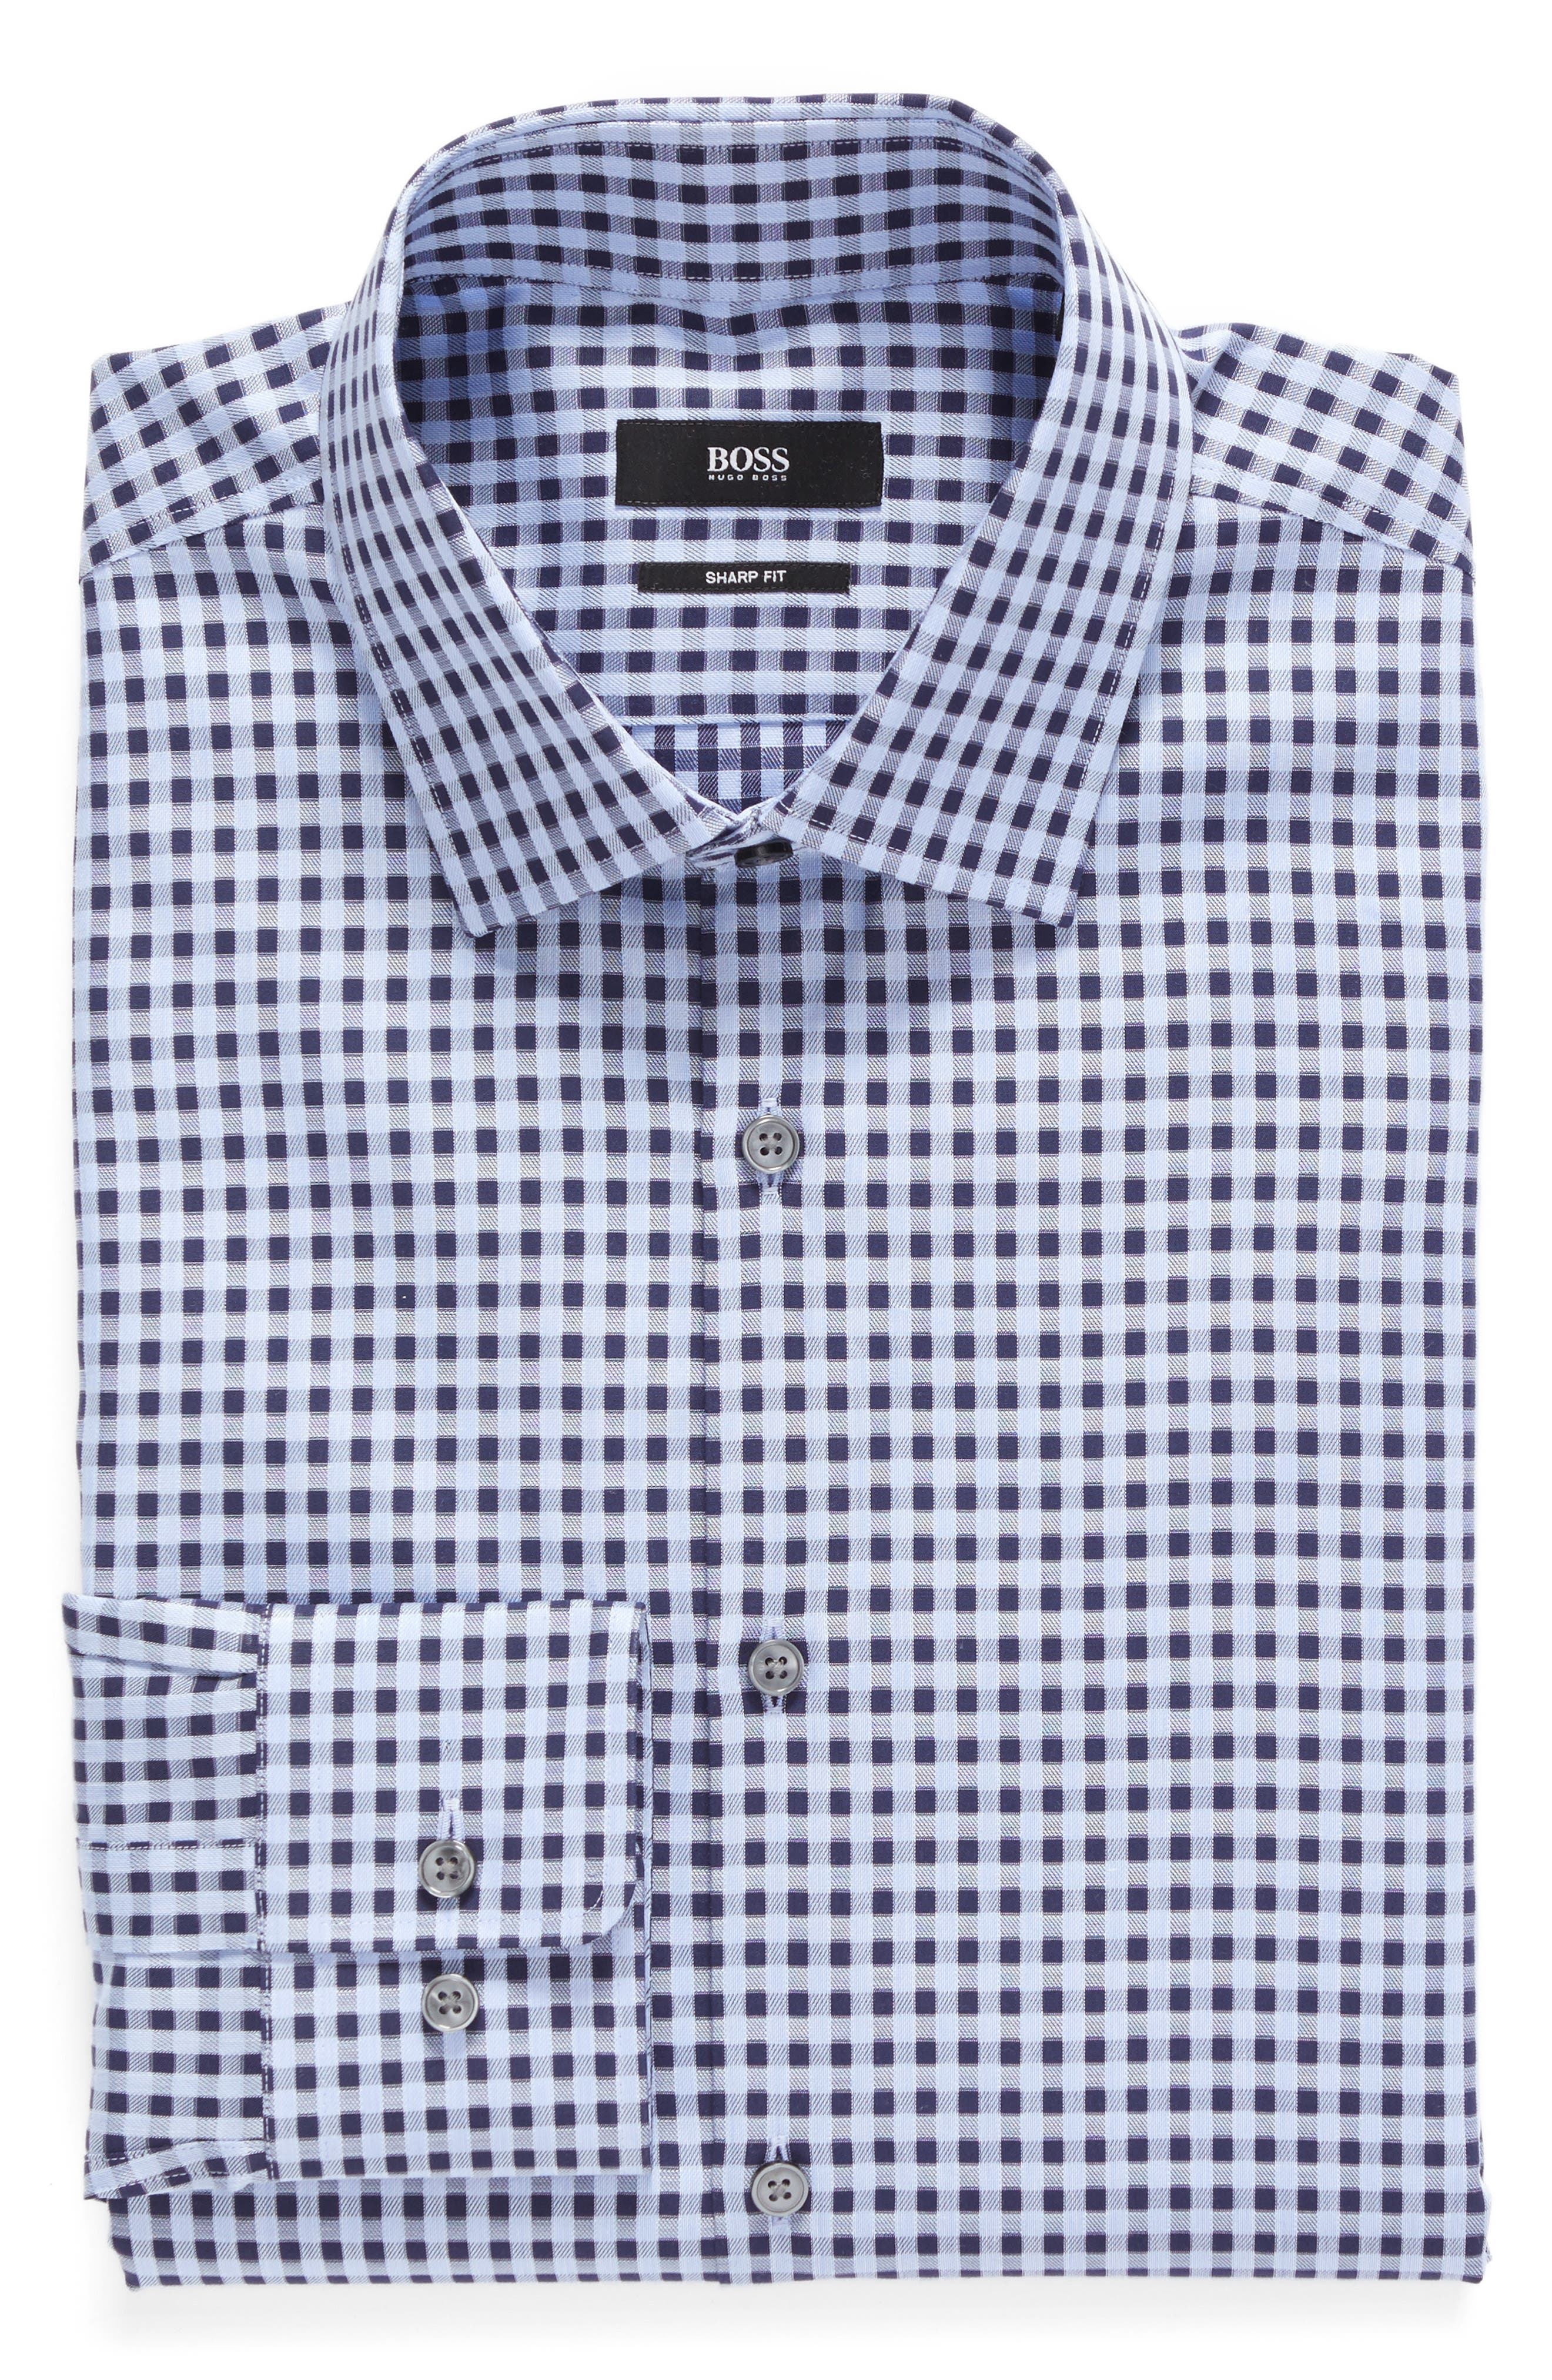 BOSS Sharp Fit Check Dress Shirt